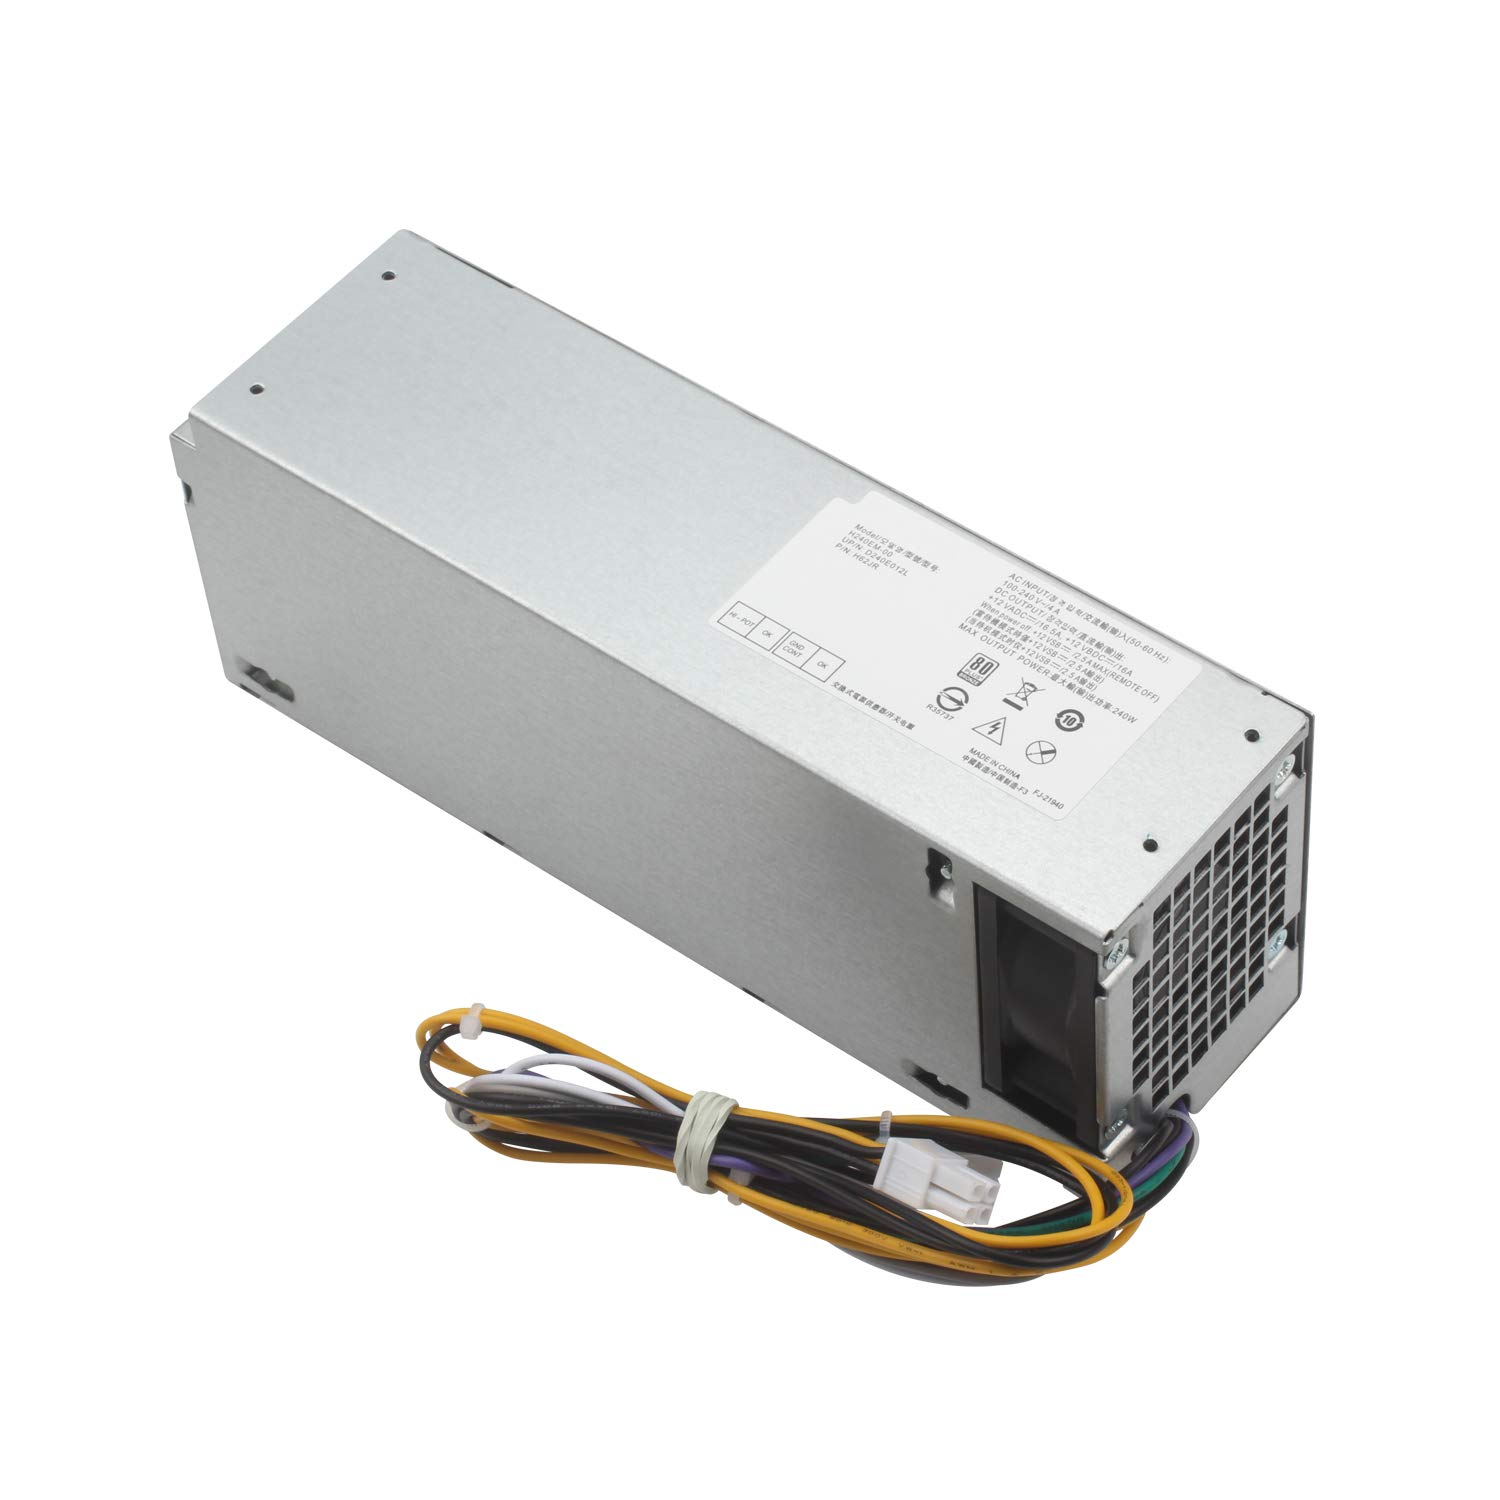 MiliPow 240W Power Supply Replacement for Dell Optiplex 3040 7040 5040 3650 3656 SFF, B240NM-00 HU240AM-00 AC240EM-00, P/N: THRJK 4GTN5 H62JR D7GX8 HGRMH 2P1RD 3RK5T